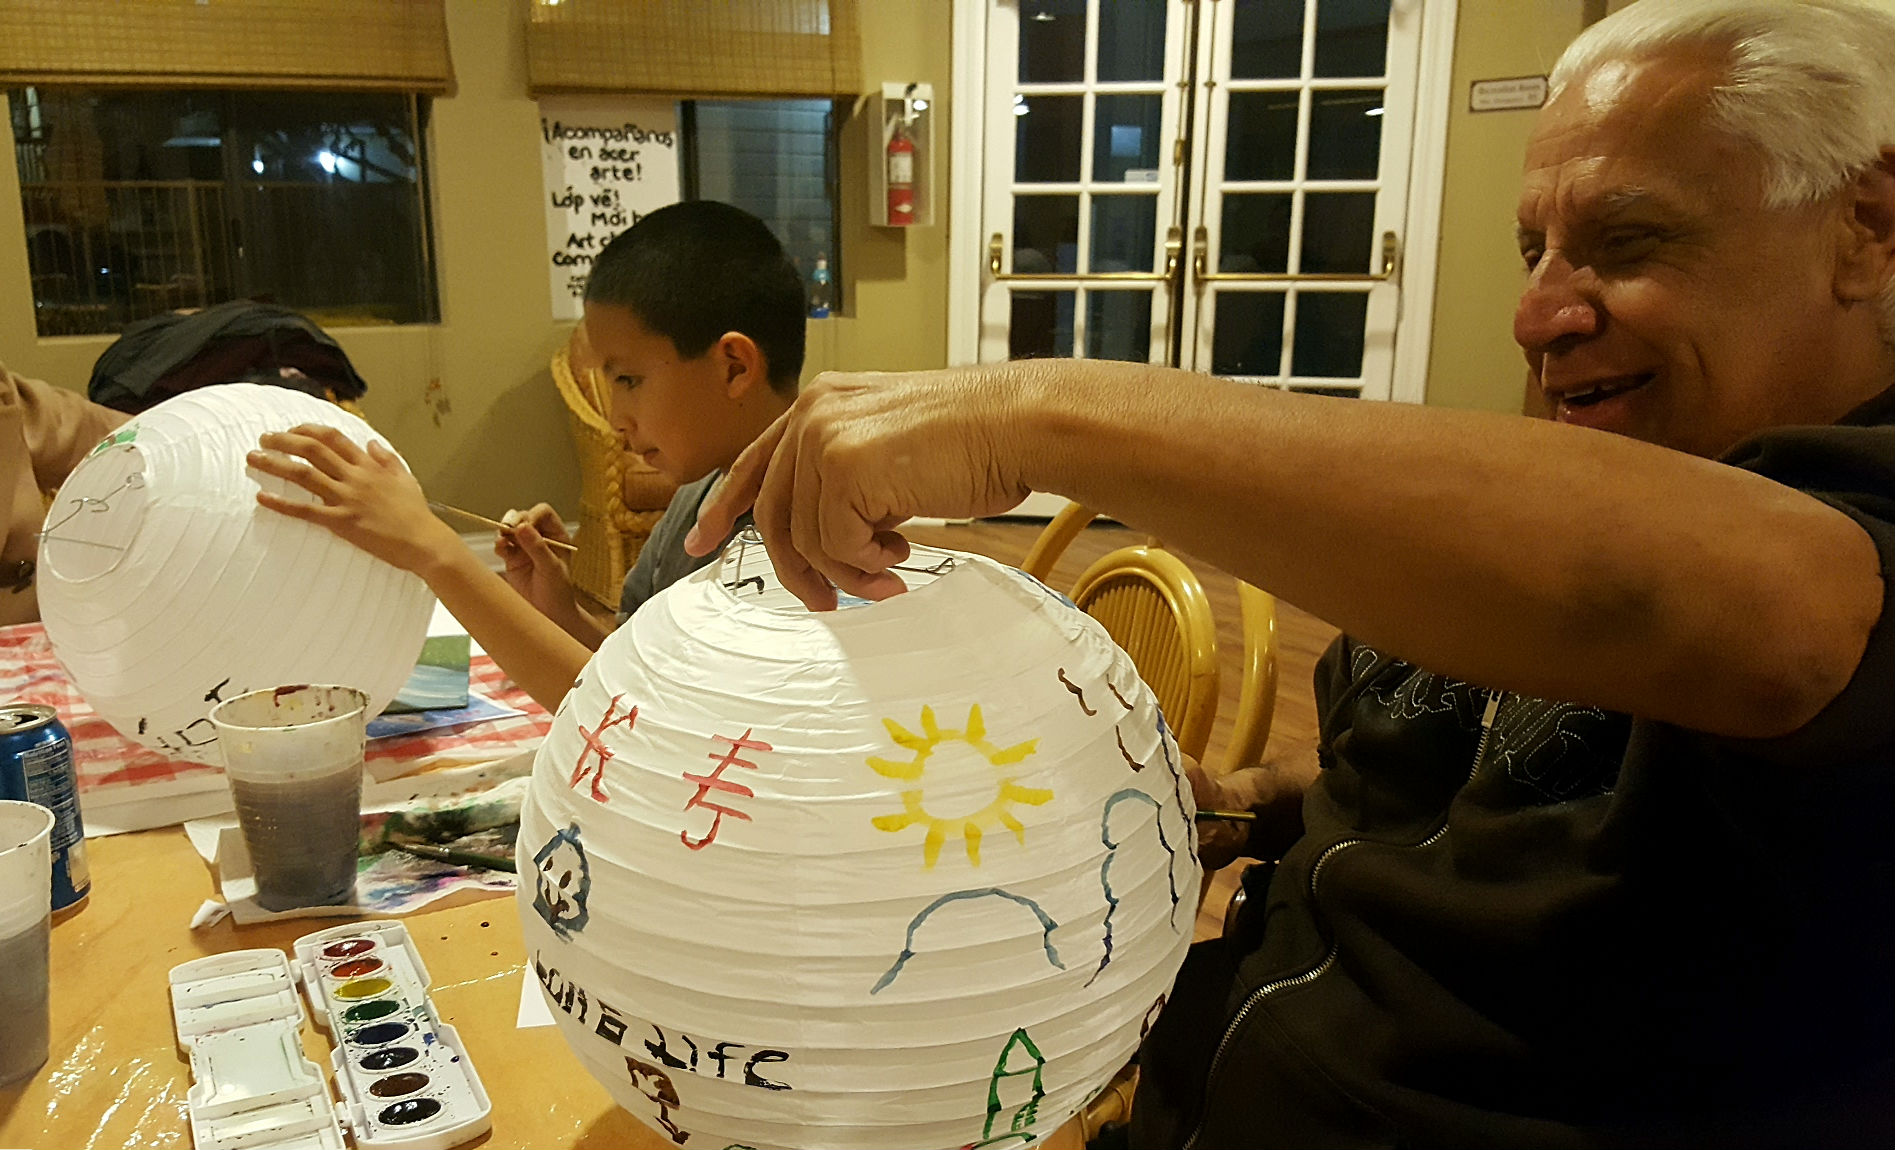 Young Parker and Peter prepare their lanterns for the  Lantern Festival , using traditional Chinese and Vietnamese images of nature. For the upcoming year, Peter hopes for  L  ongevity  and paints its Chinese character on his lantern.